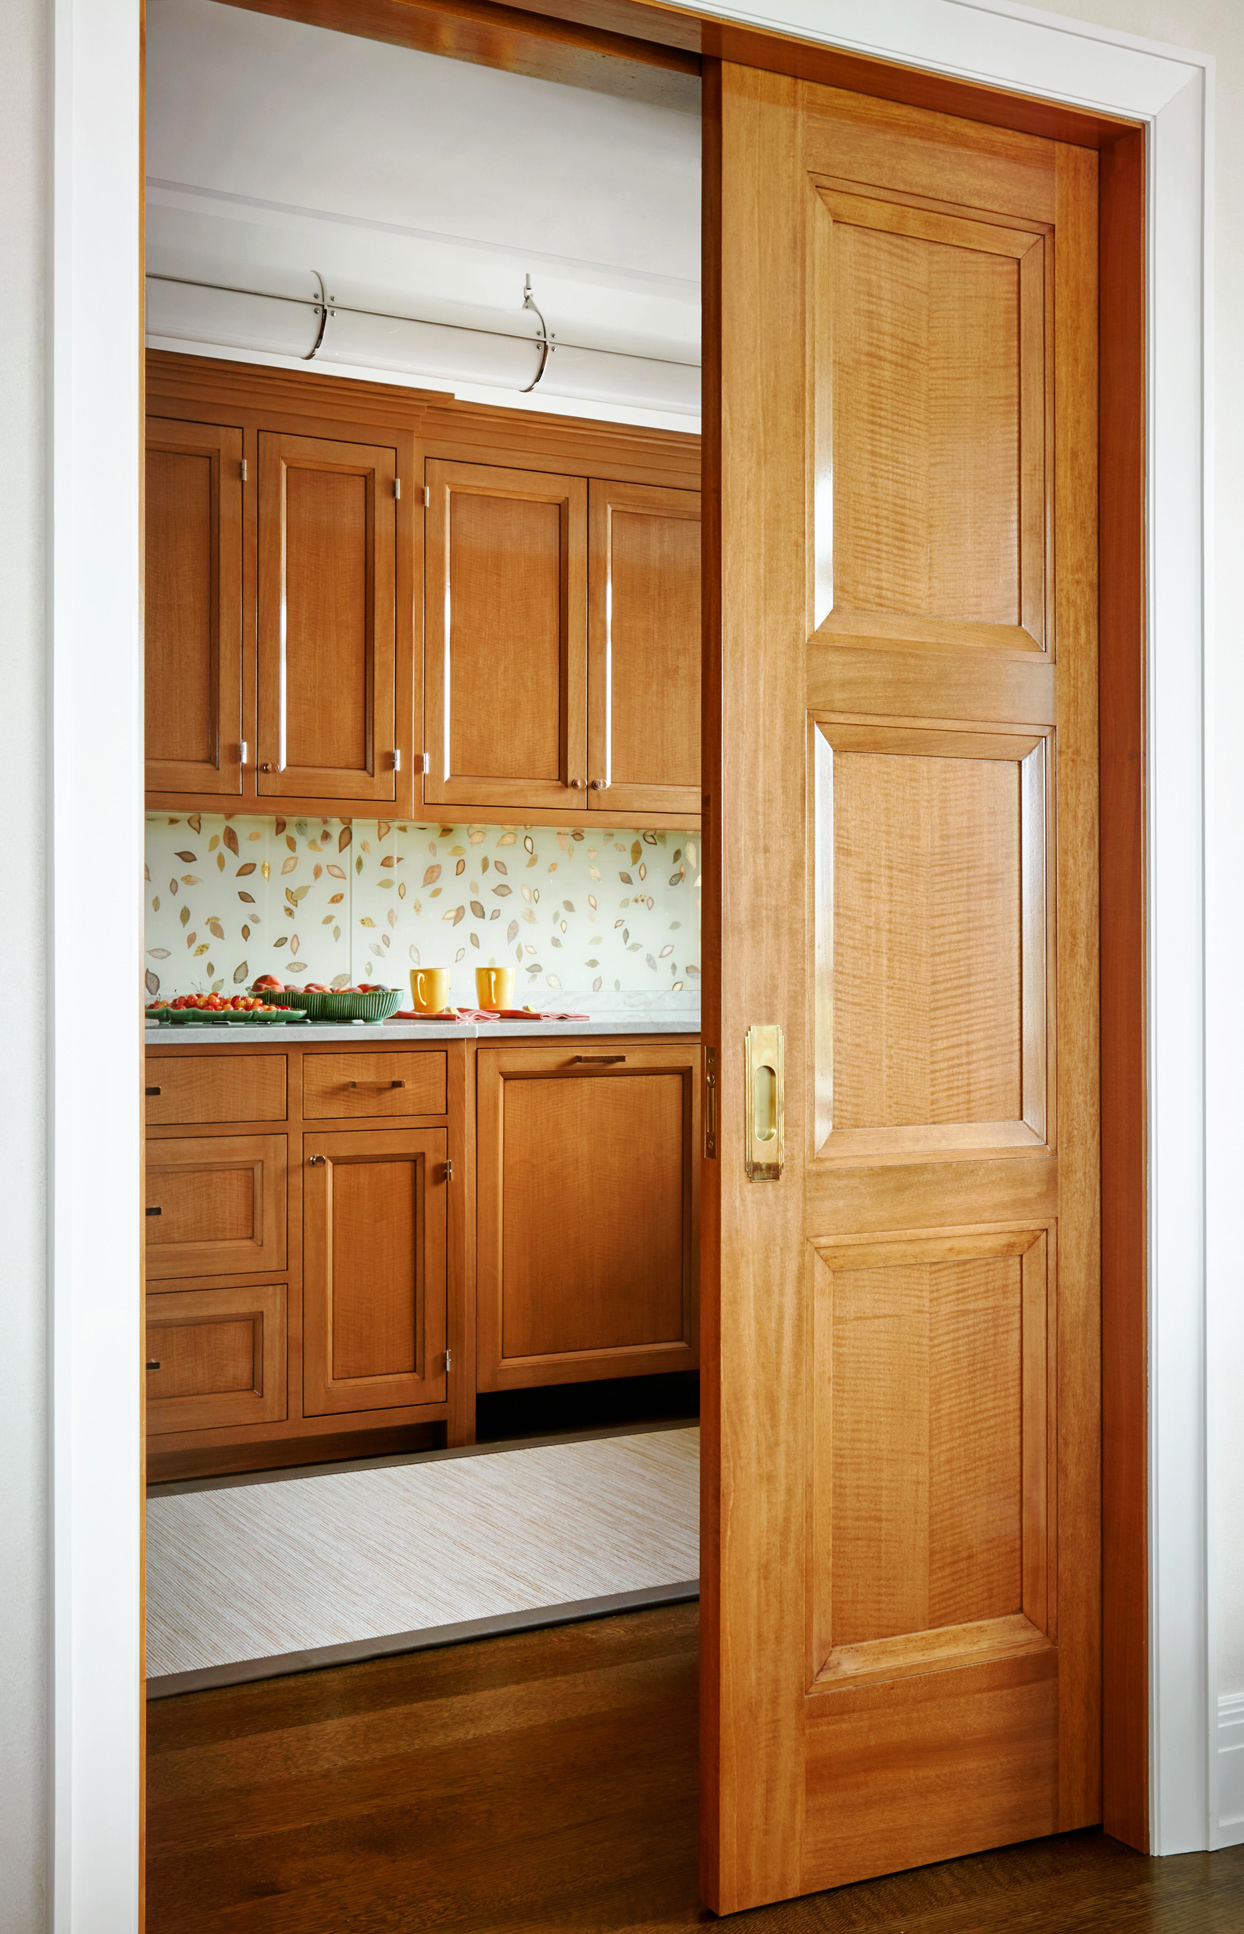 Pocket door opening to small kitchen with wooden cabinets